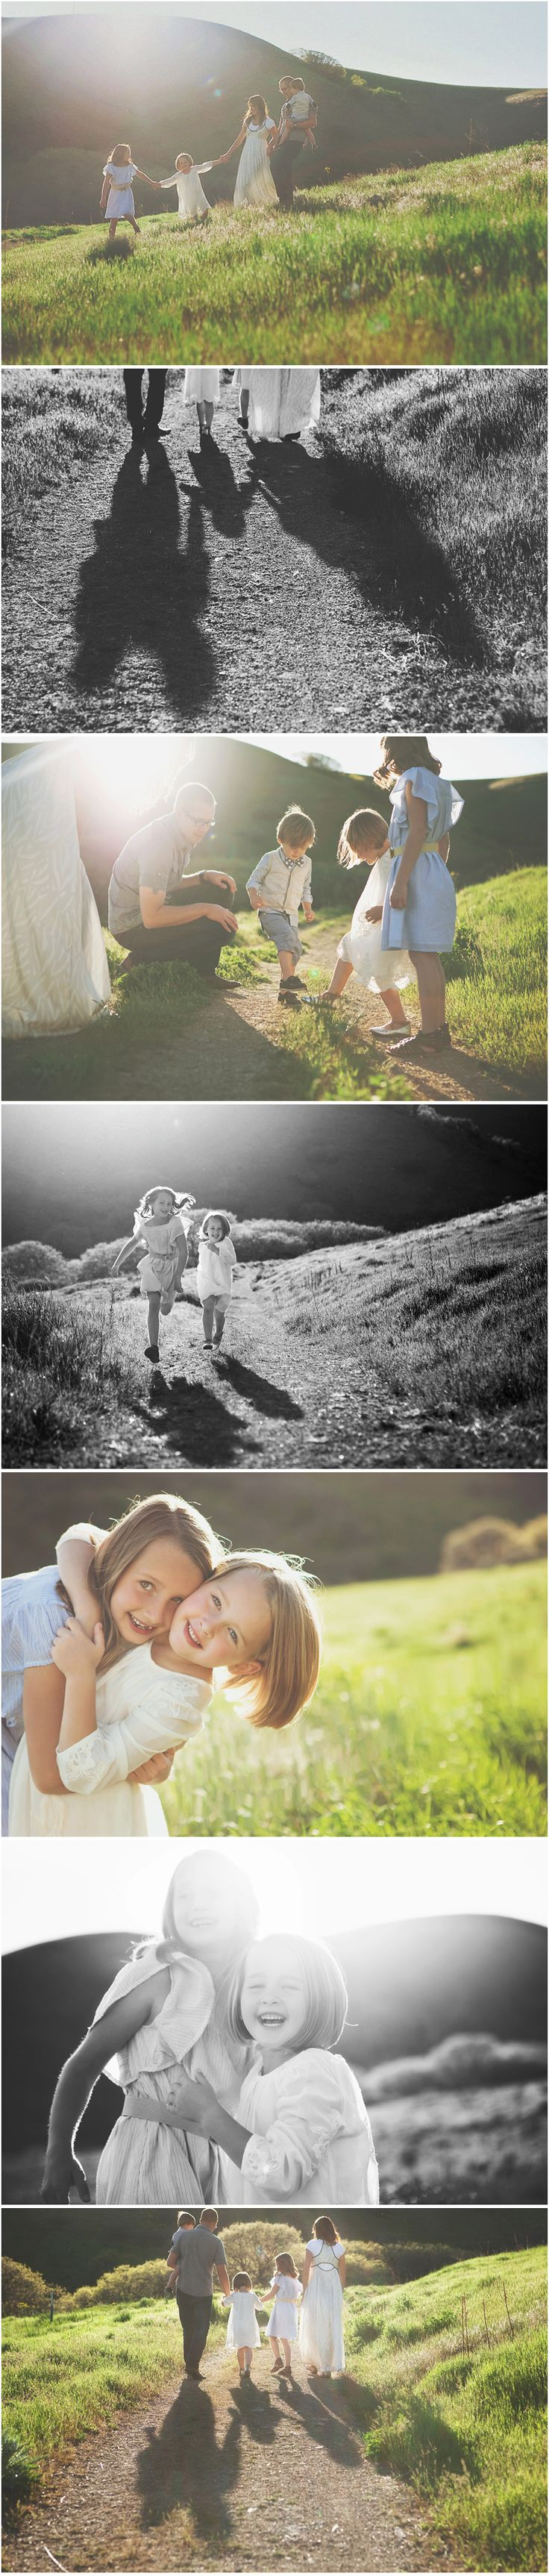 sun drenched hills….Summer Murdock Photography | Utah Family Photographer | Beautiful light